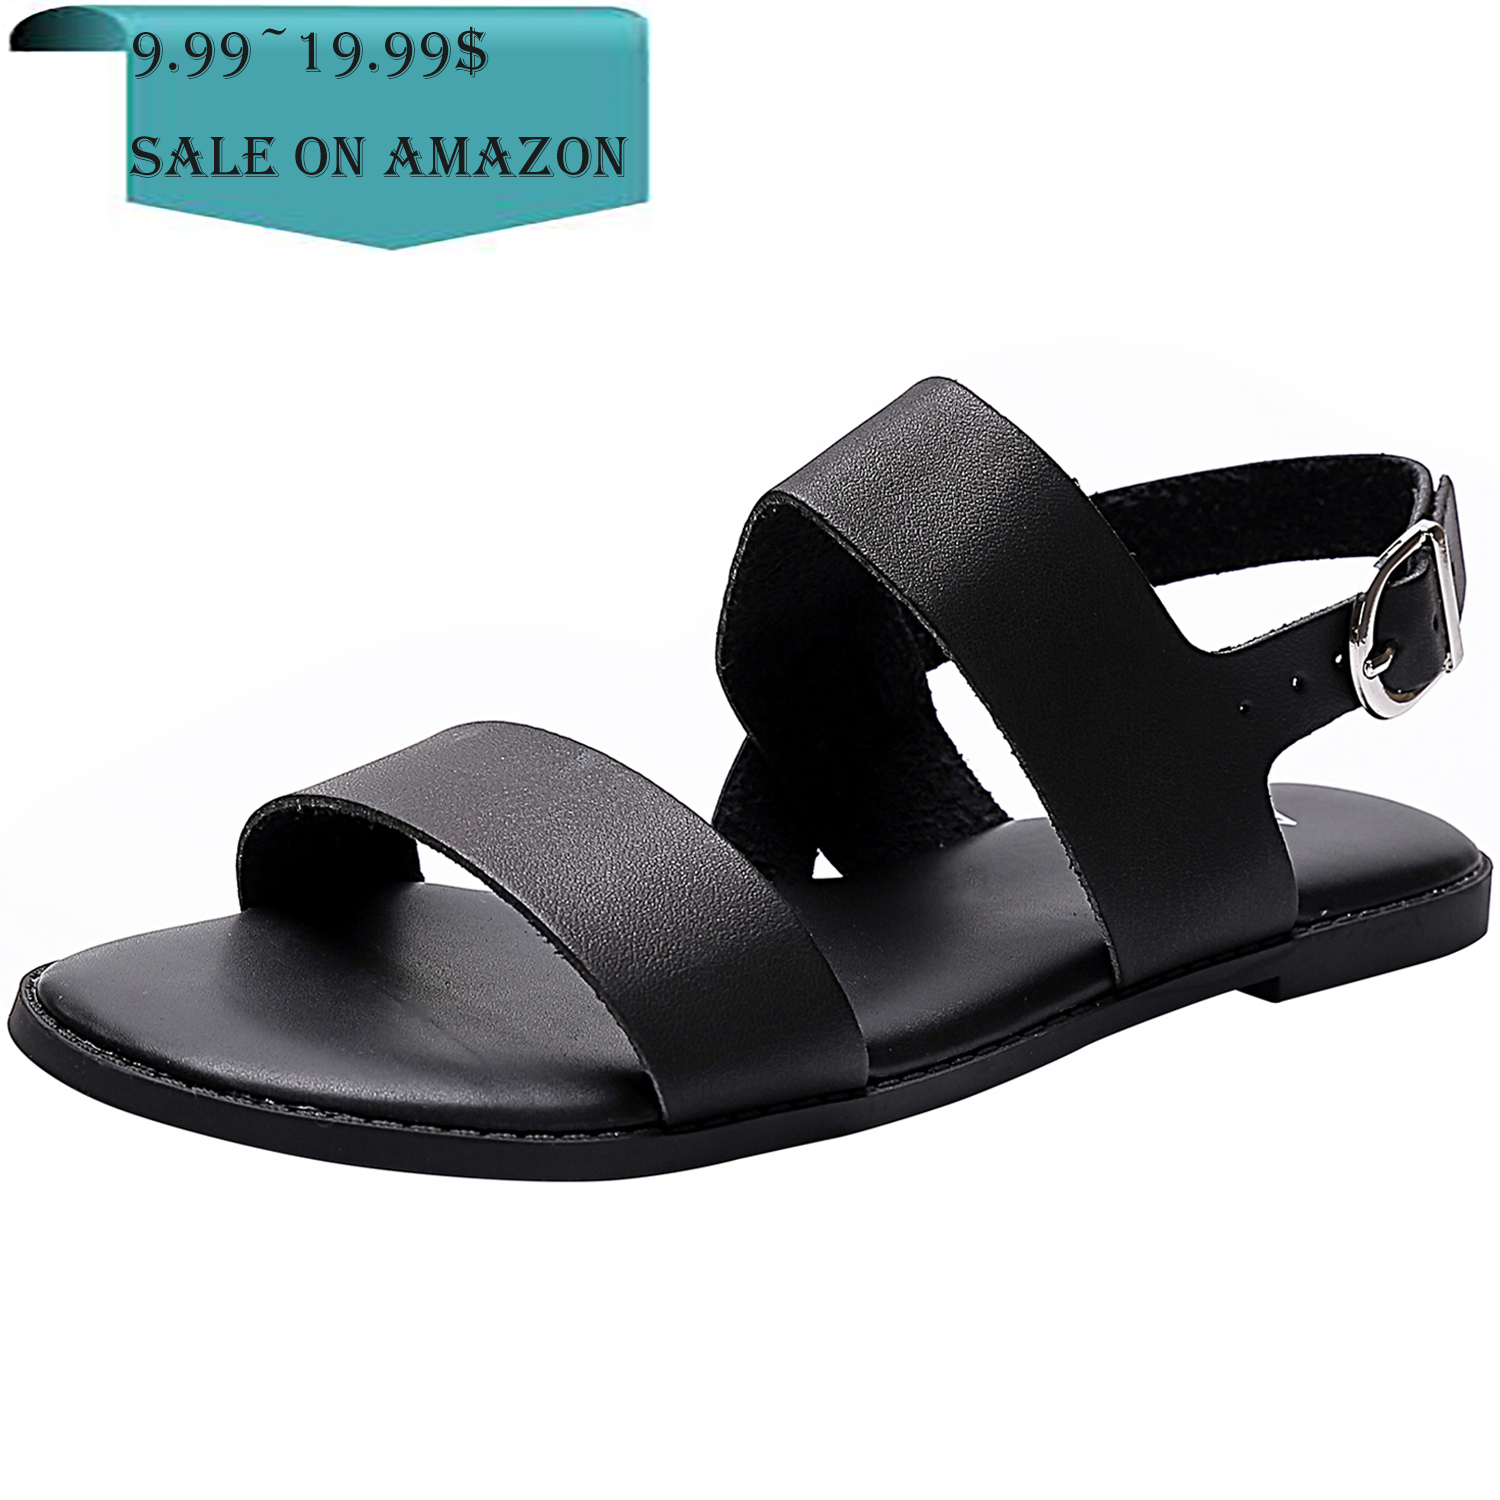 340a96f9509 US  29.99 - Women s Wide Width Flat Sandals - Comfortable Open Toe Ankle  Strap Flexible Casual Summer Shoes - www.luoika-us.com